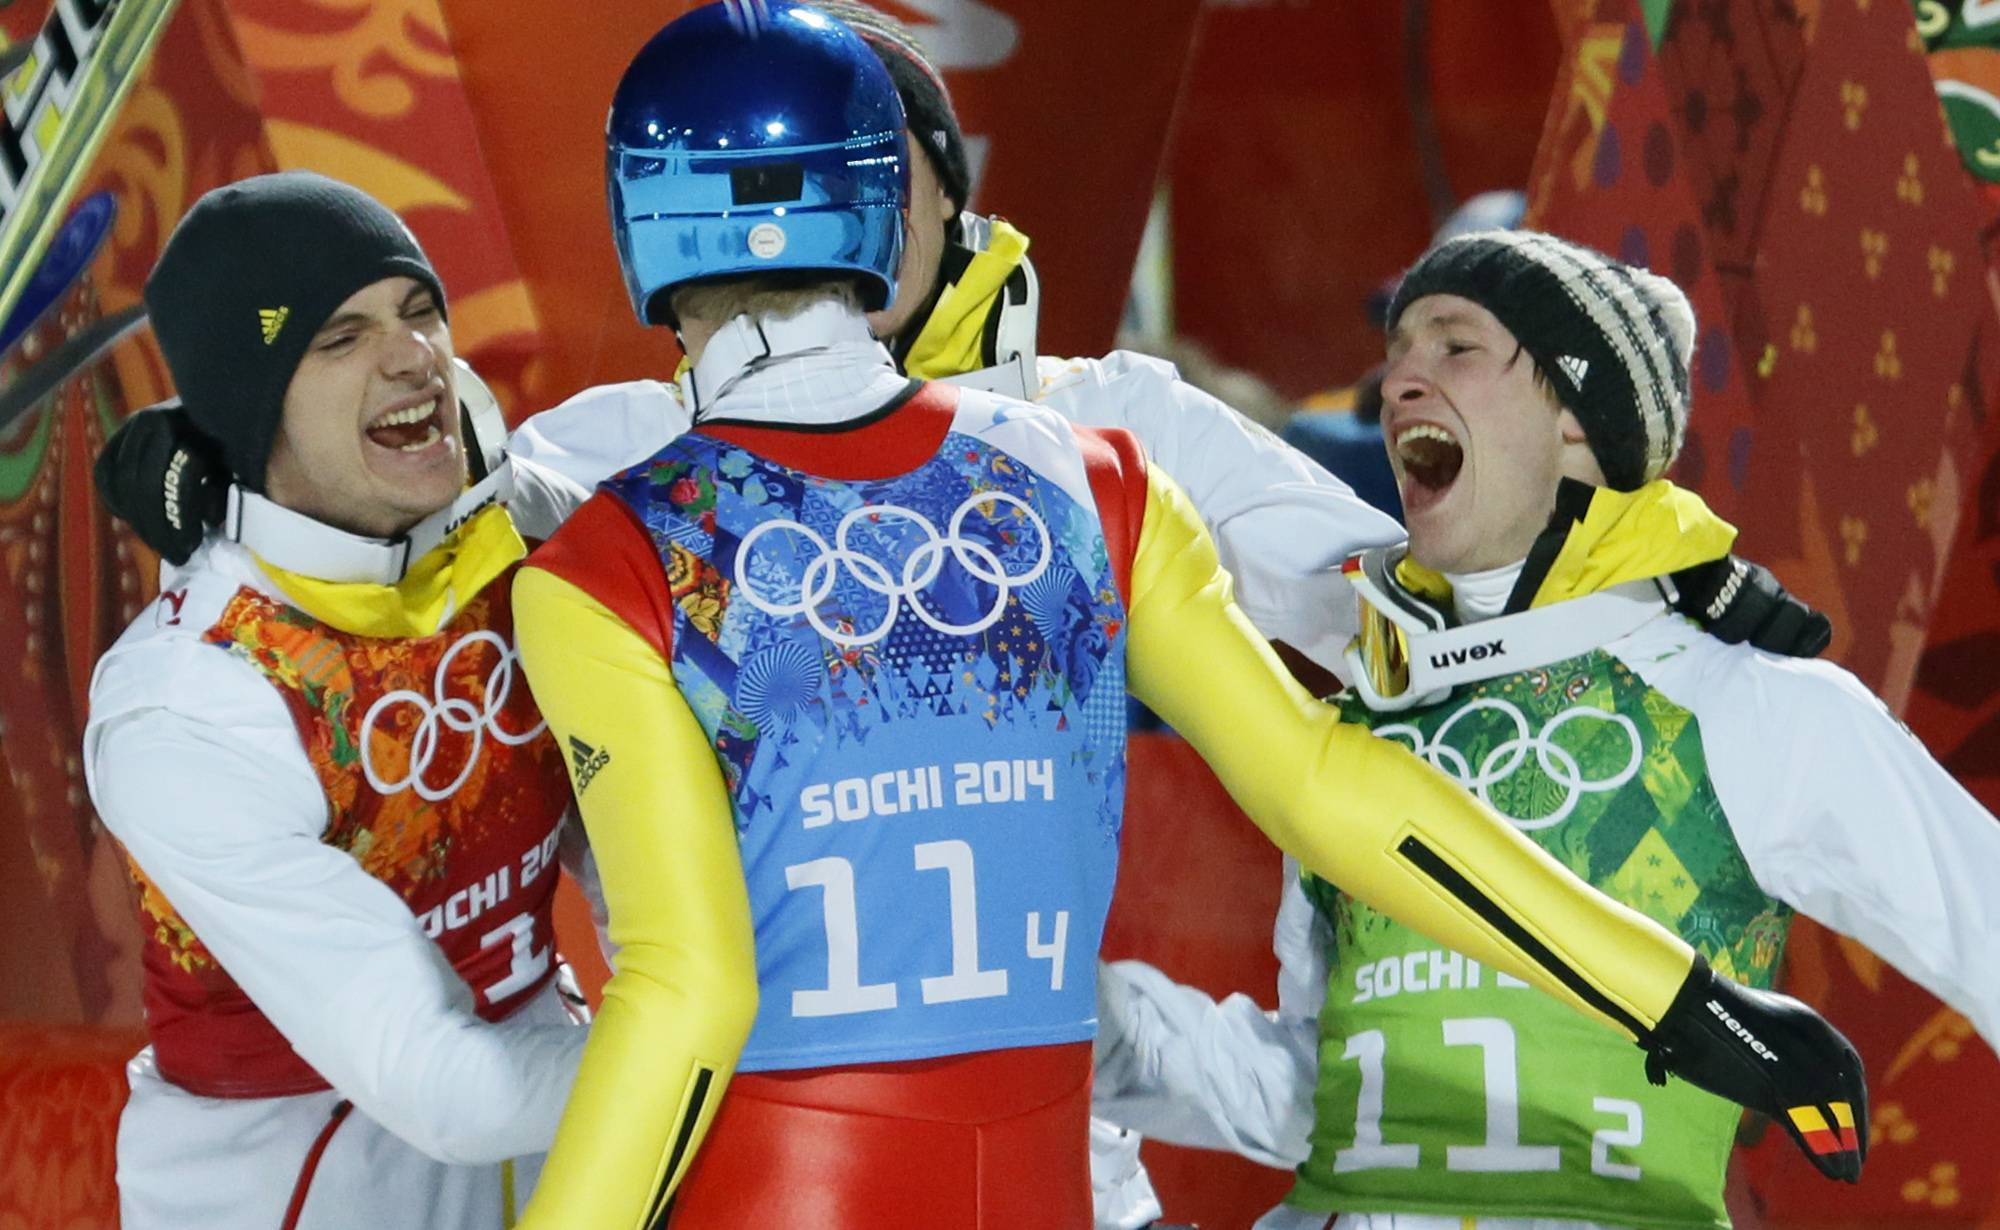 Germany's Andreas Wank, left, and Marinus Kraus, right, congratulate teammate Severin Freund after learning they won the gold during the ski jumping team competition Monday at the Sochi Olympics.